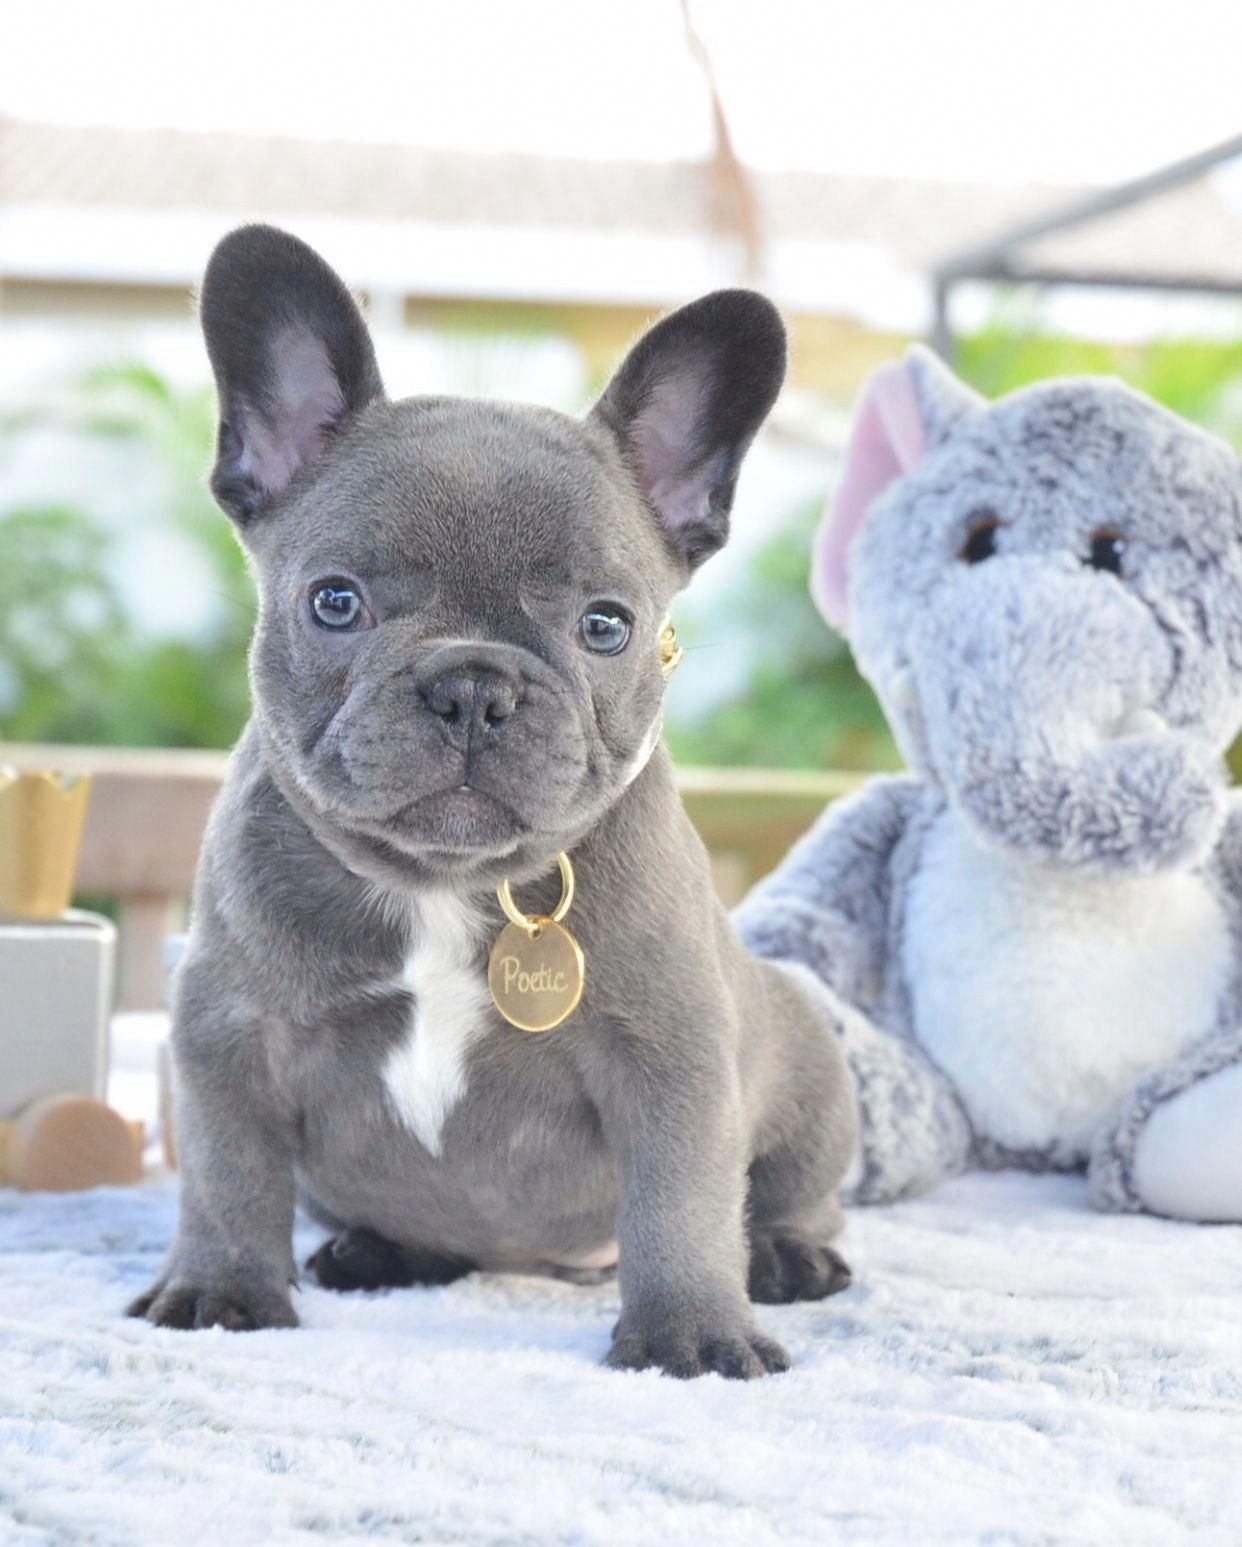 (notitle) FrenchBulldogscare FrenchBulldogsproducts